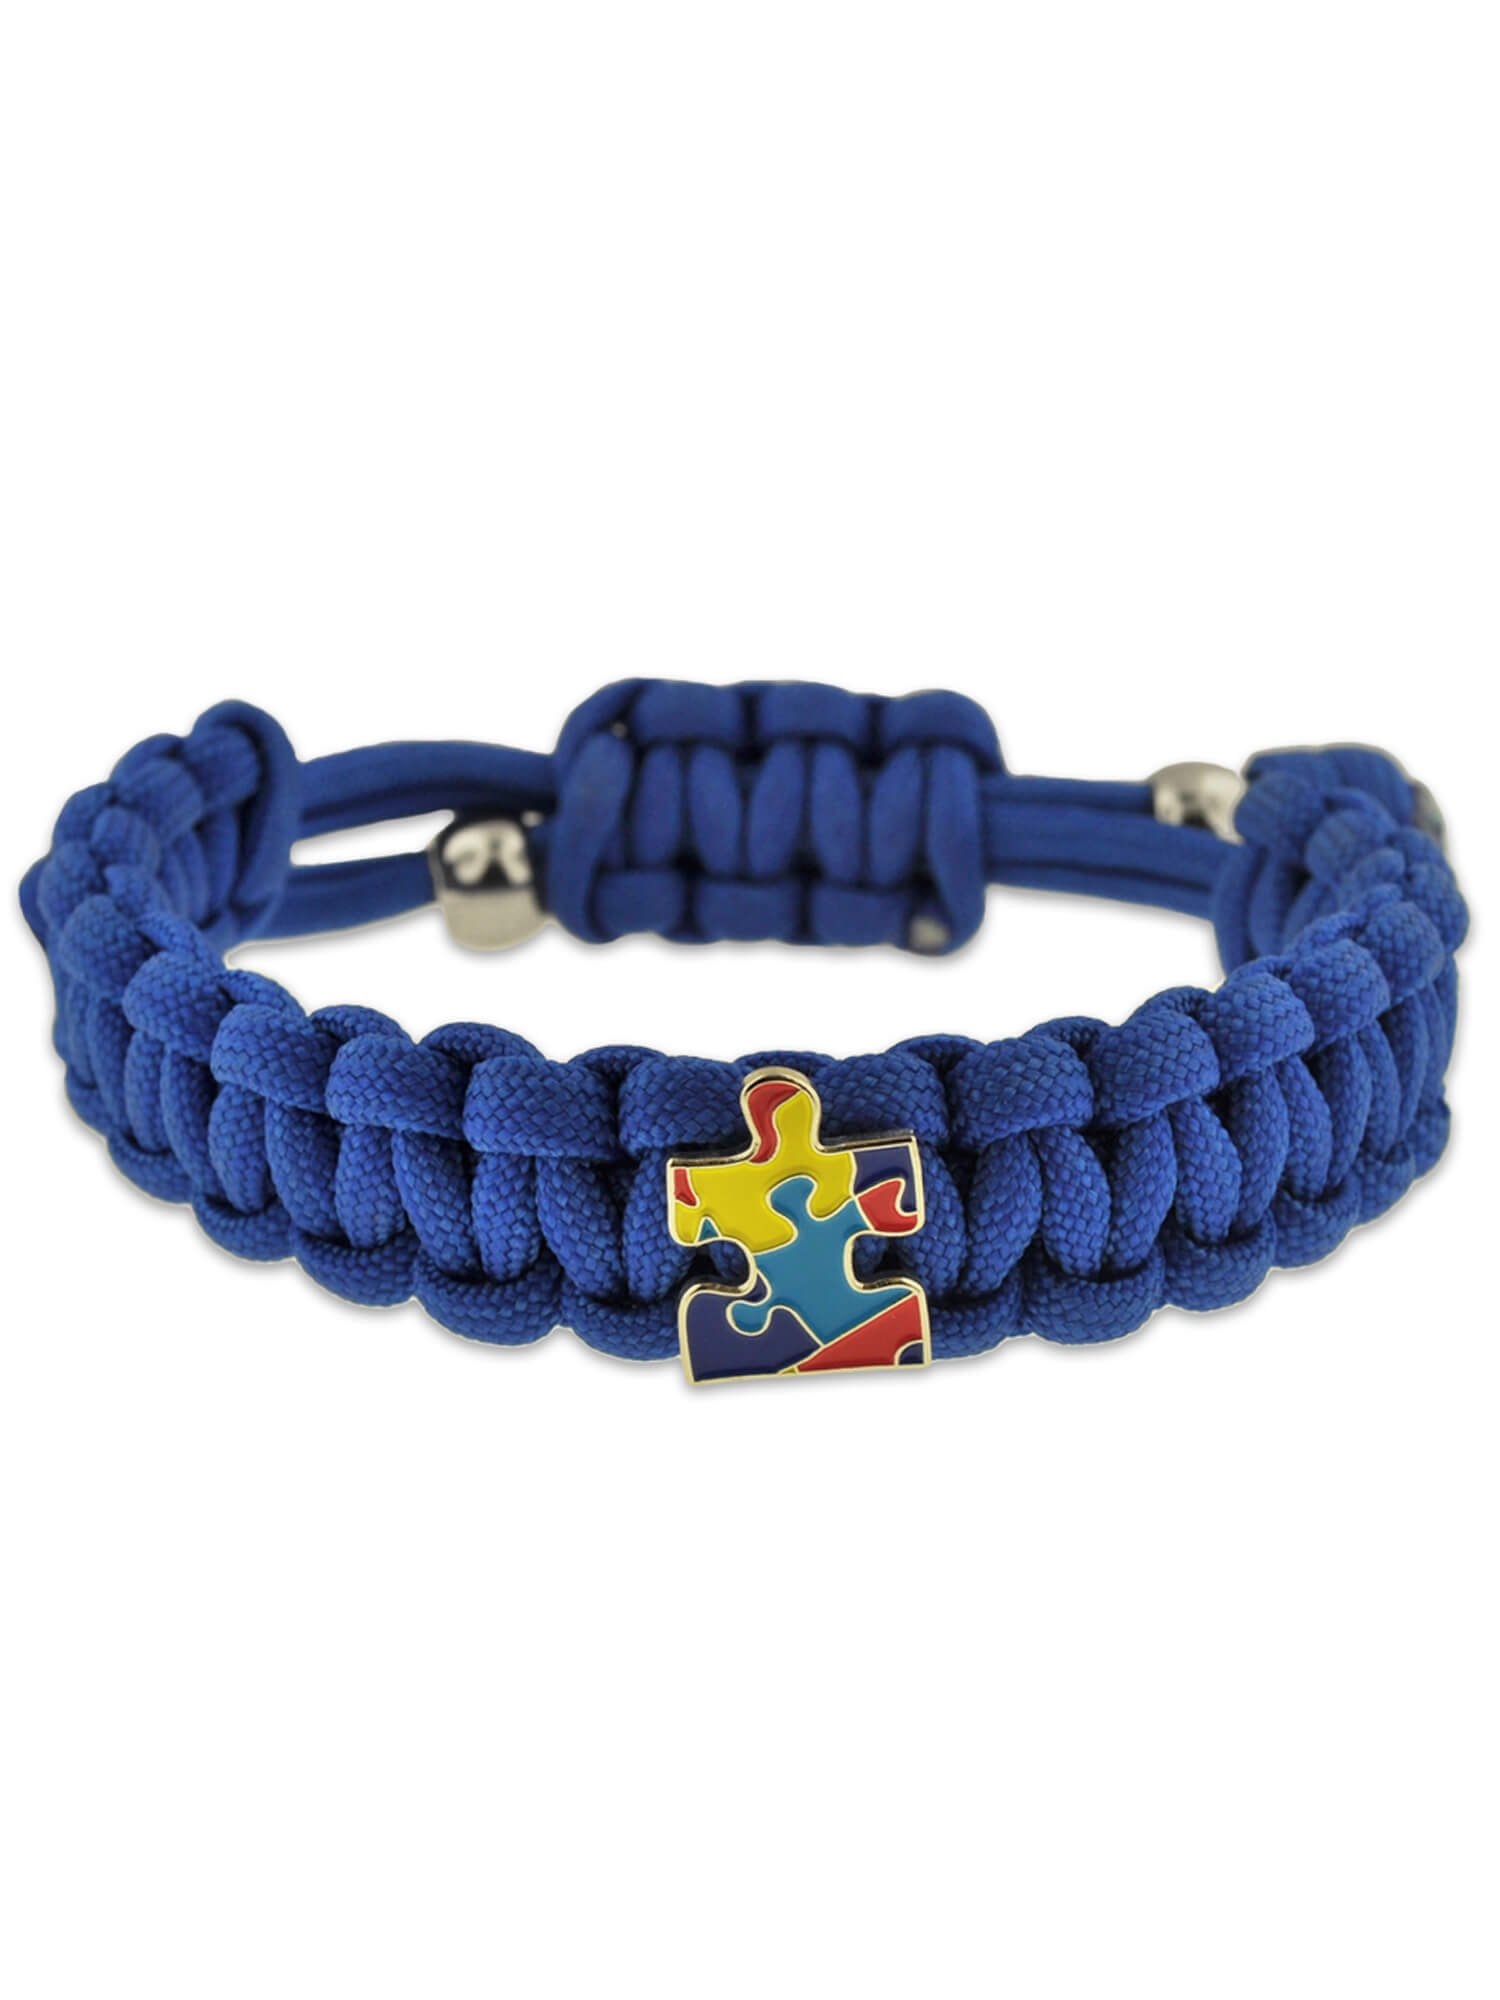 Autism Awareness Paracord Adjustable Survival Bracelet with Puzzle Piece Charm